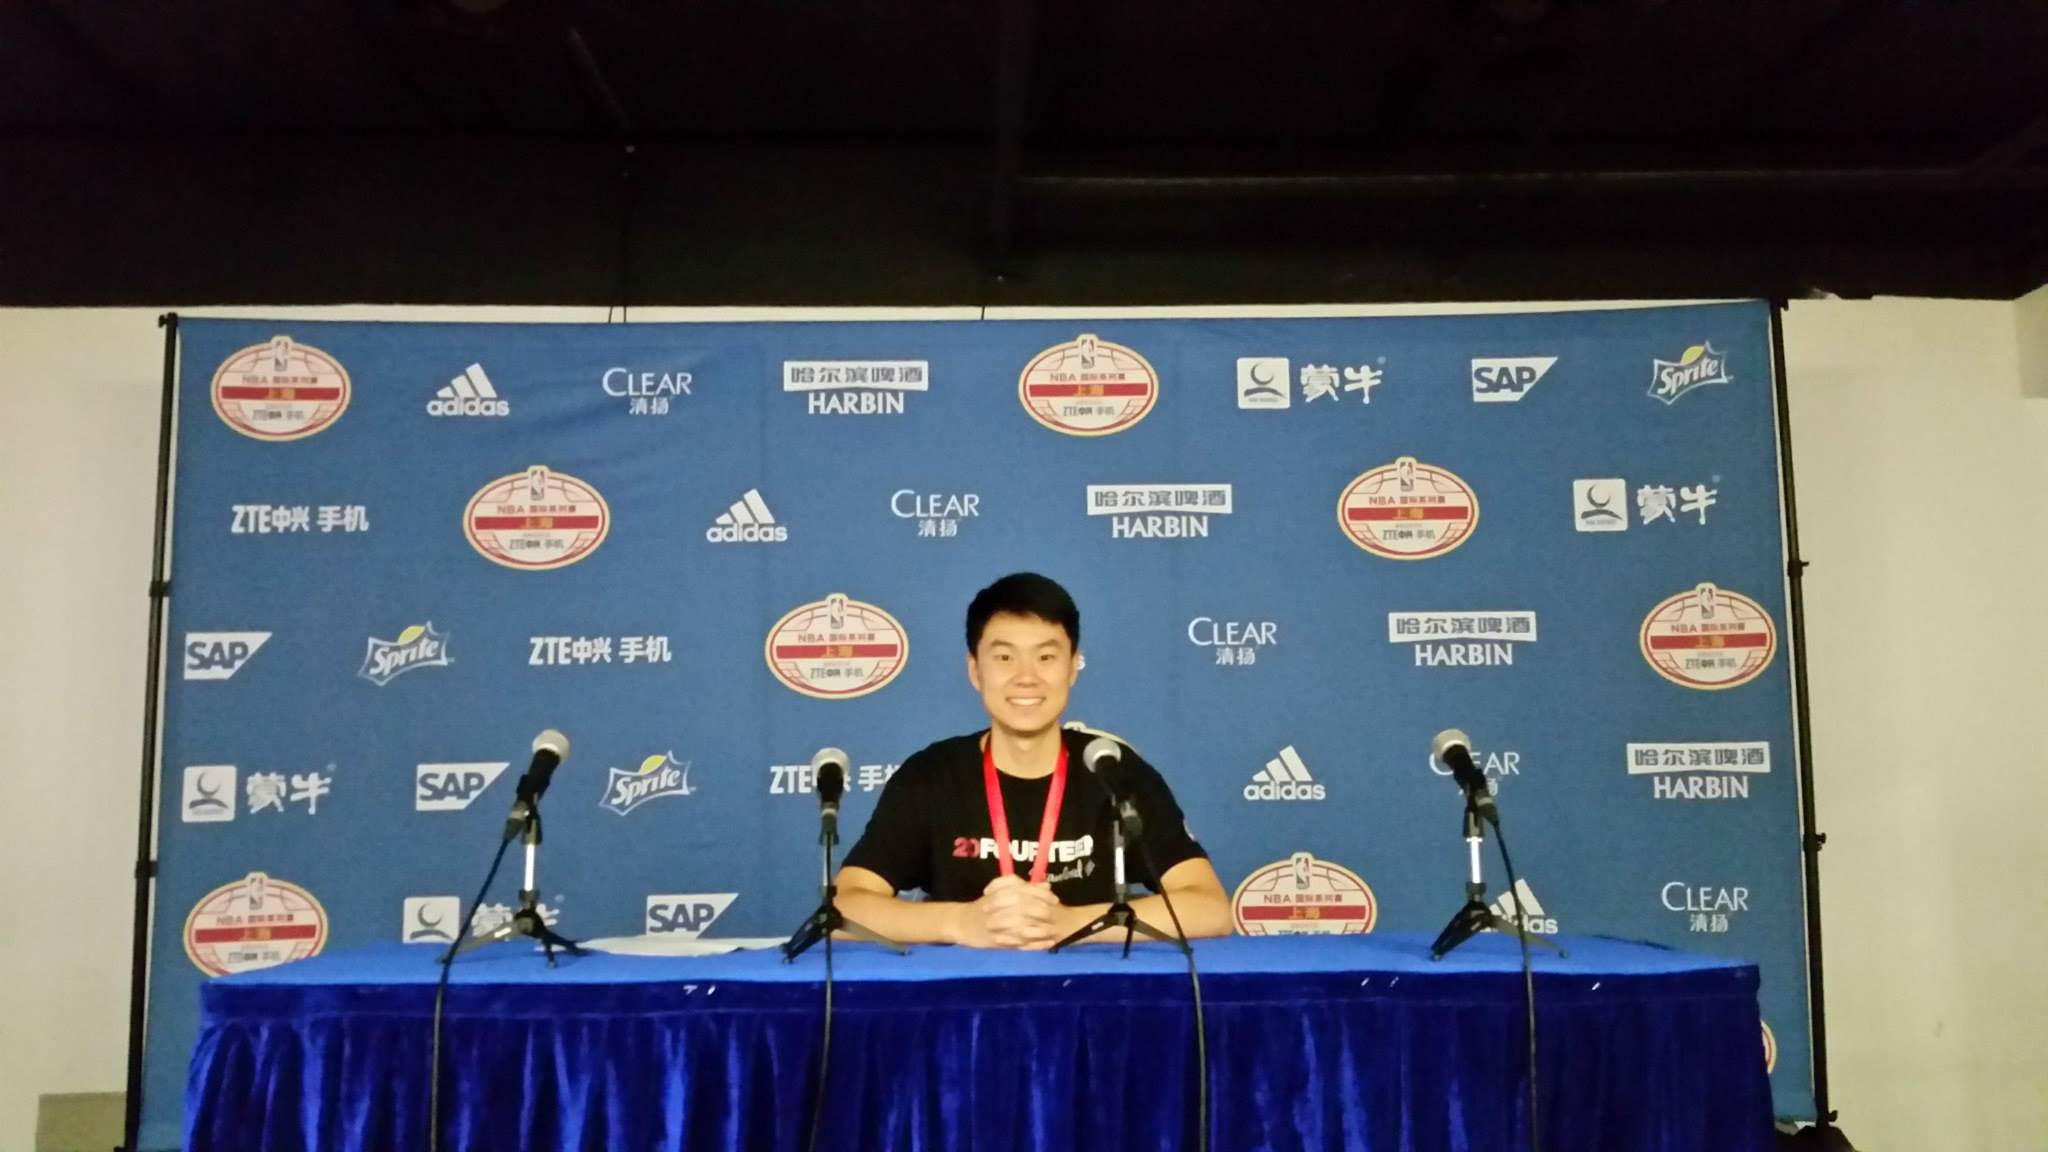 At the NBA Global Games press conference table in Beijing.